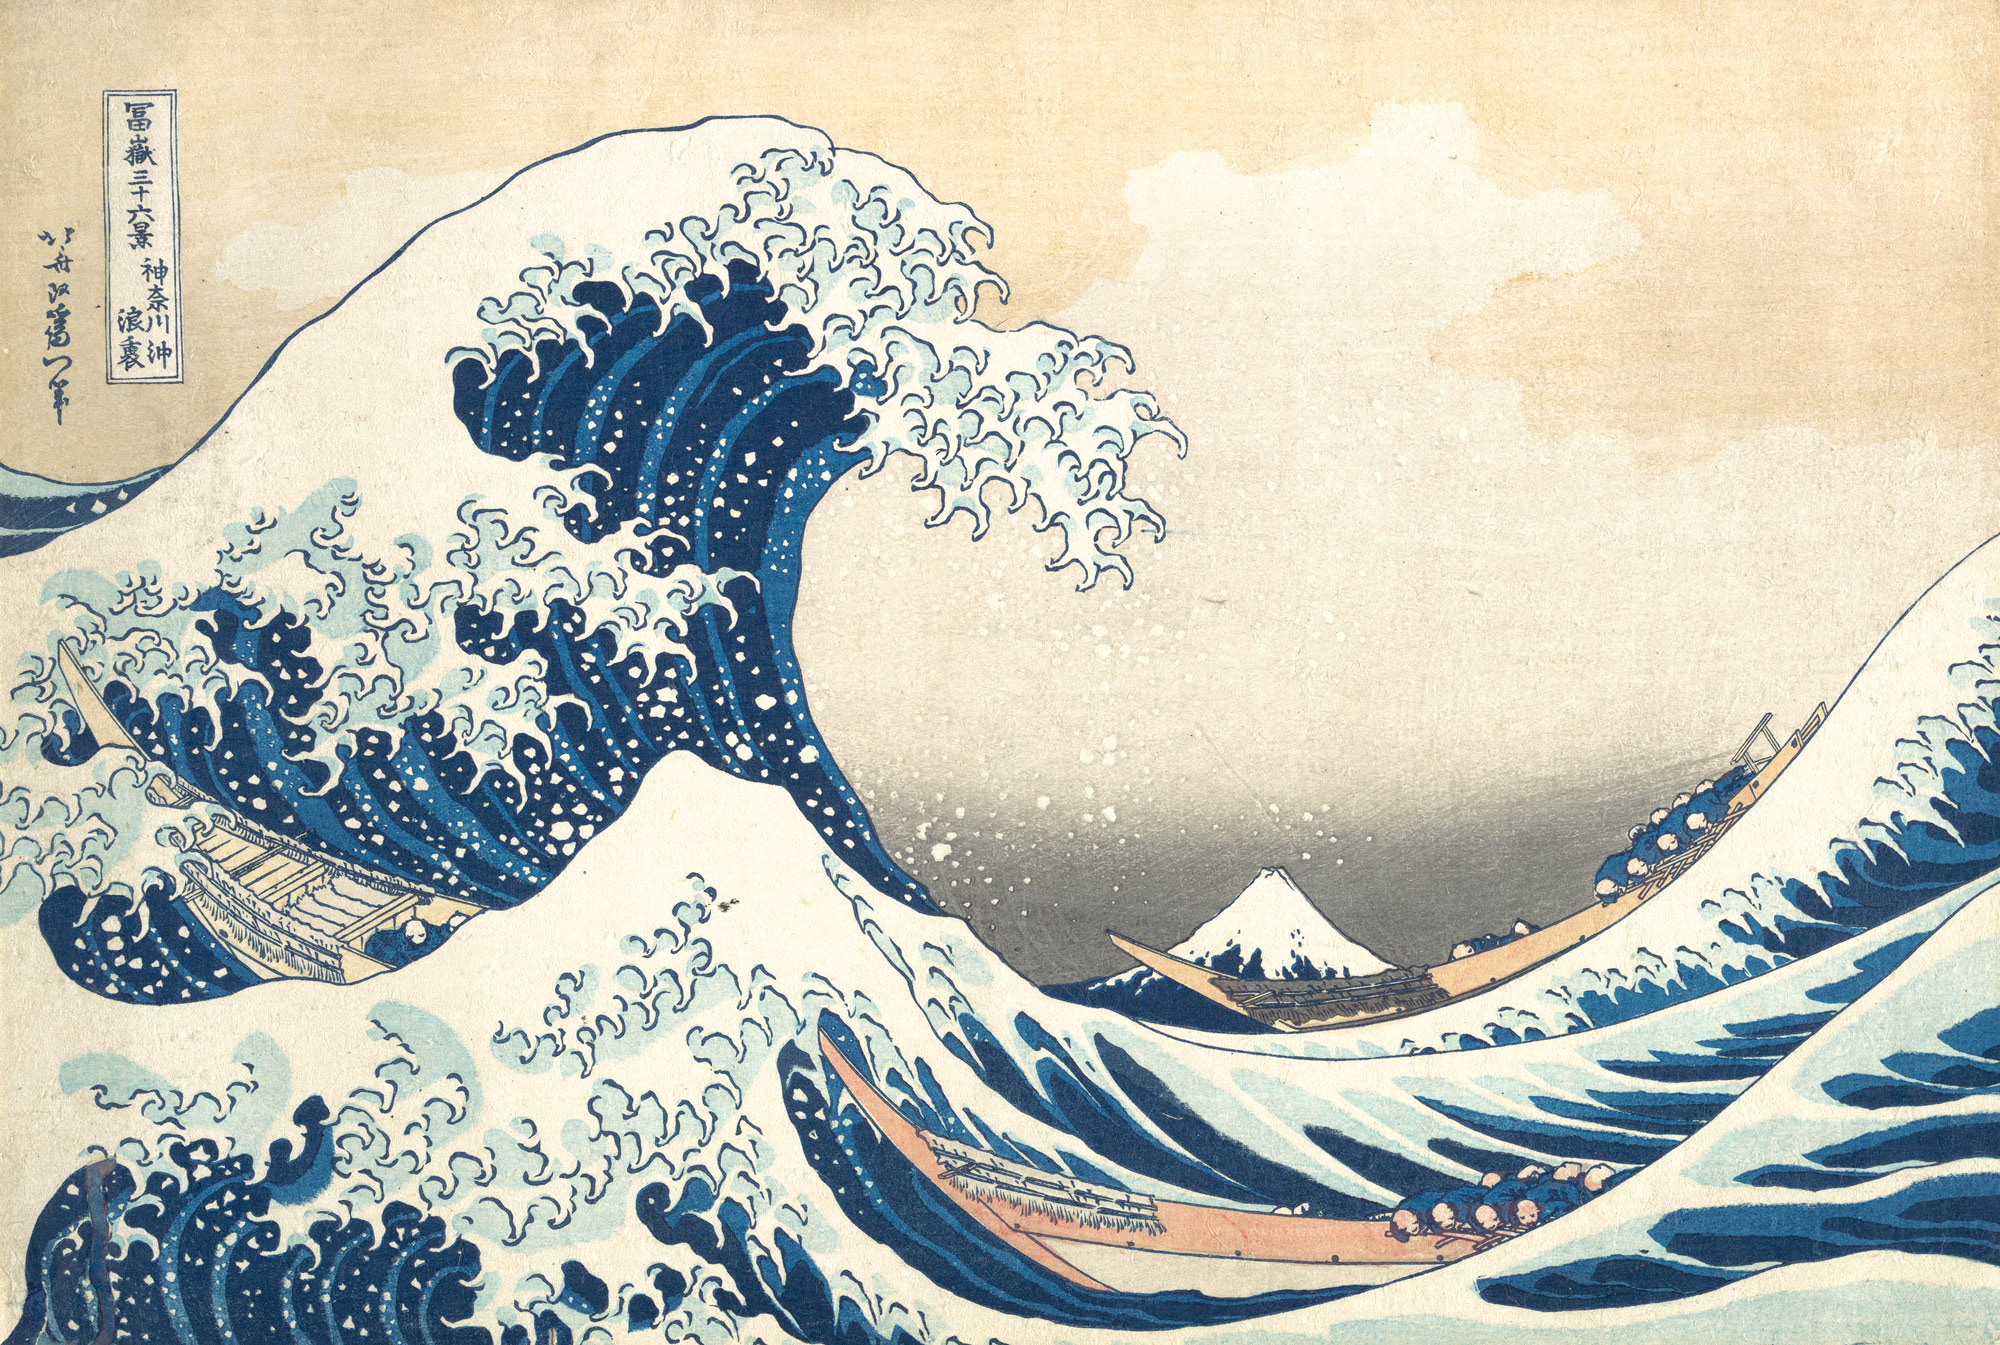 Artwork: The Great Wave at Kanagawa (from a Series of Thirty-Six Views of Mount Fuji) by Katsushika Hokusai.